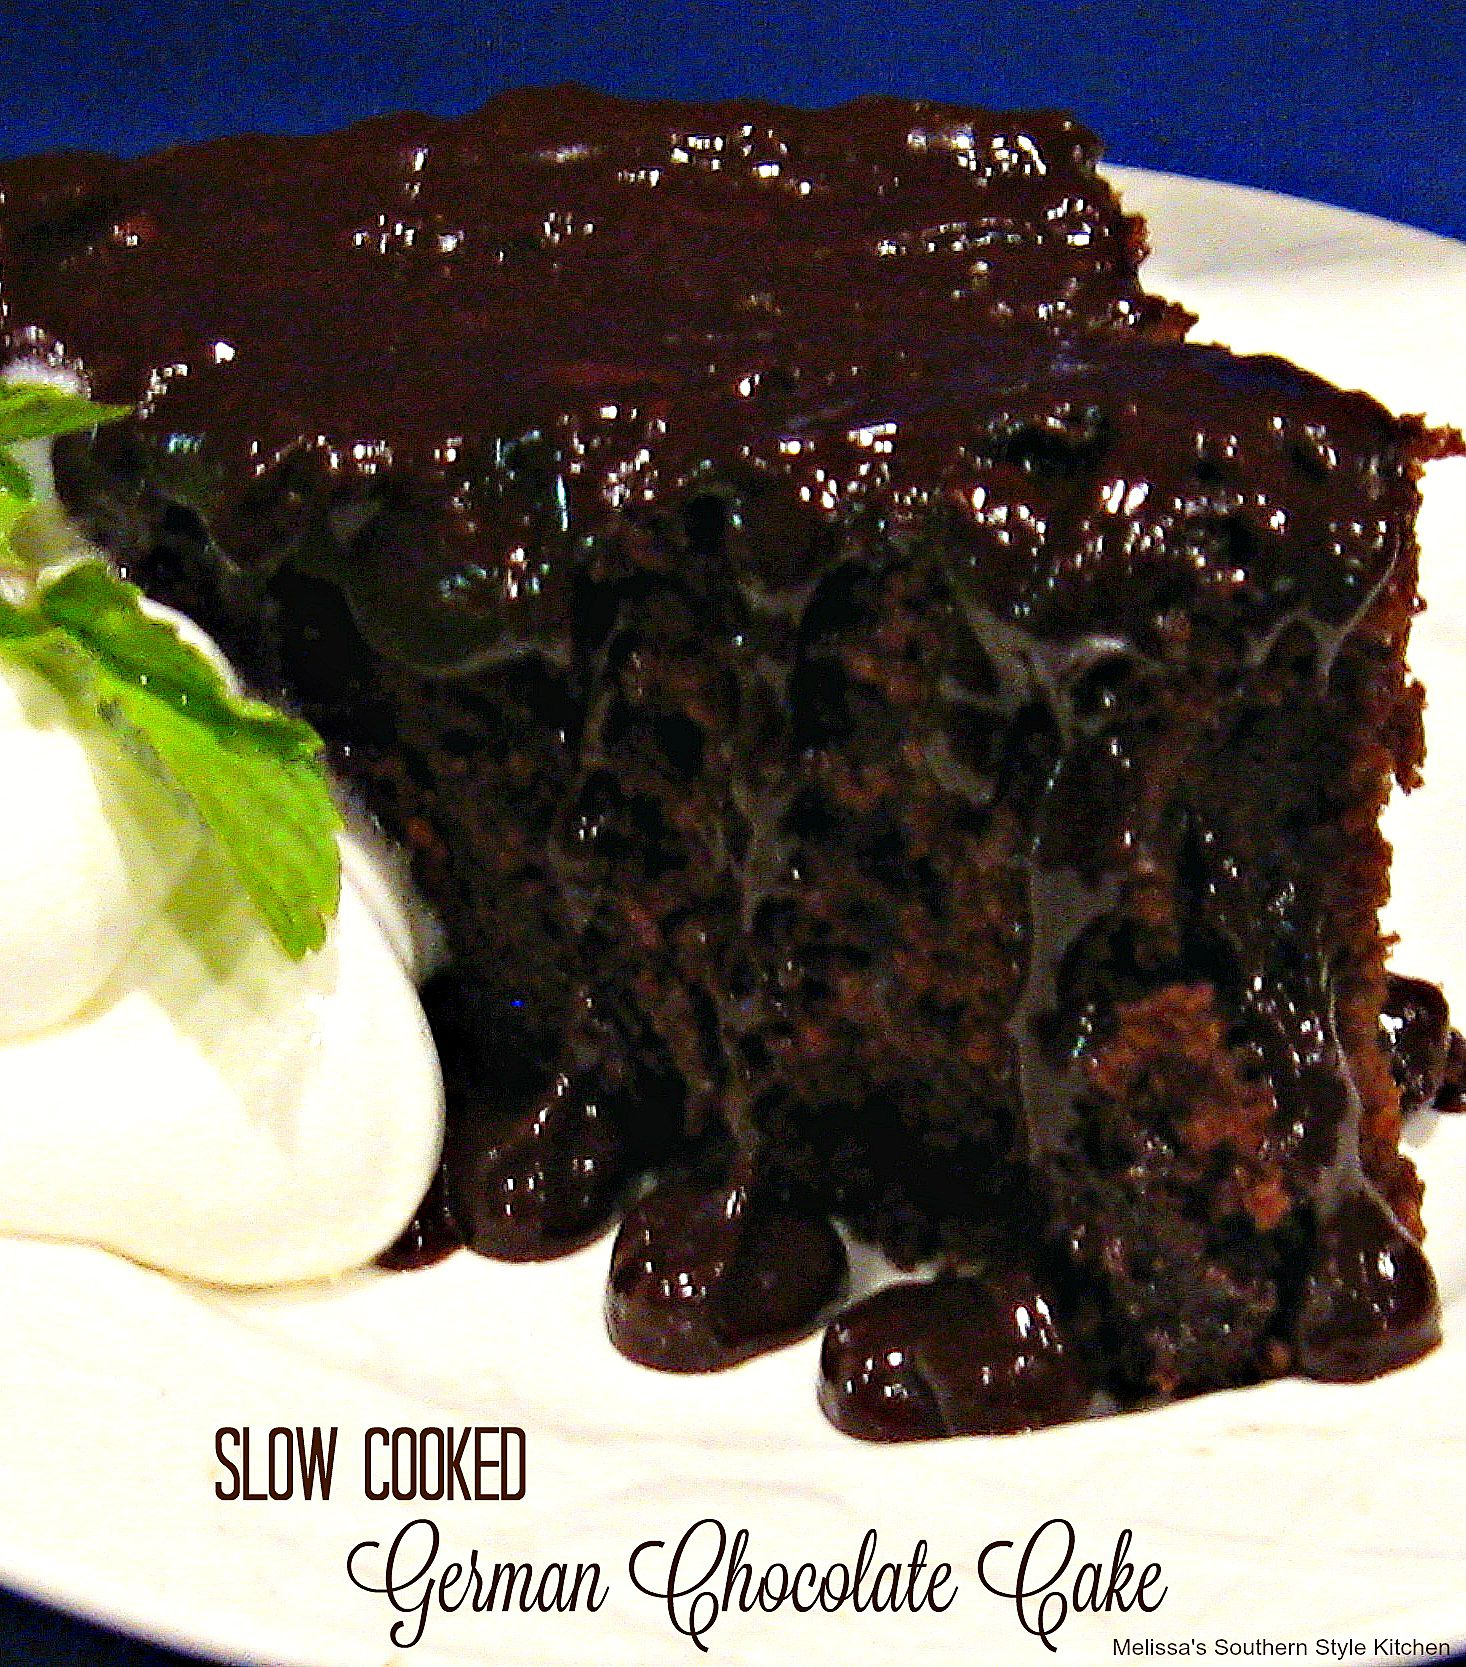 Upside down Slow Cooked German Chocolate Cake made in your slow